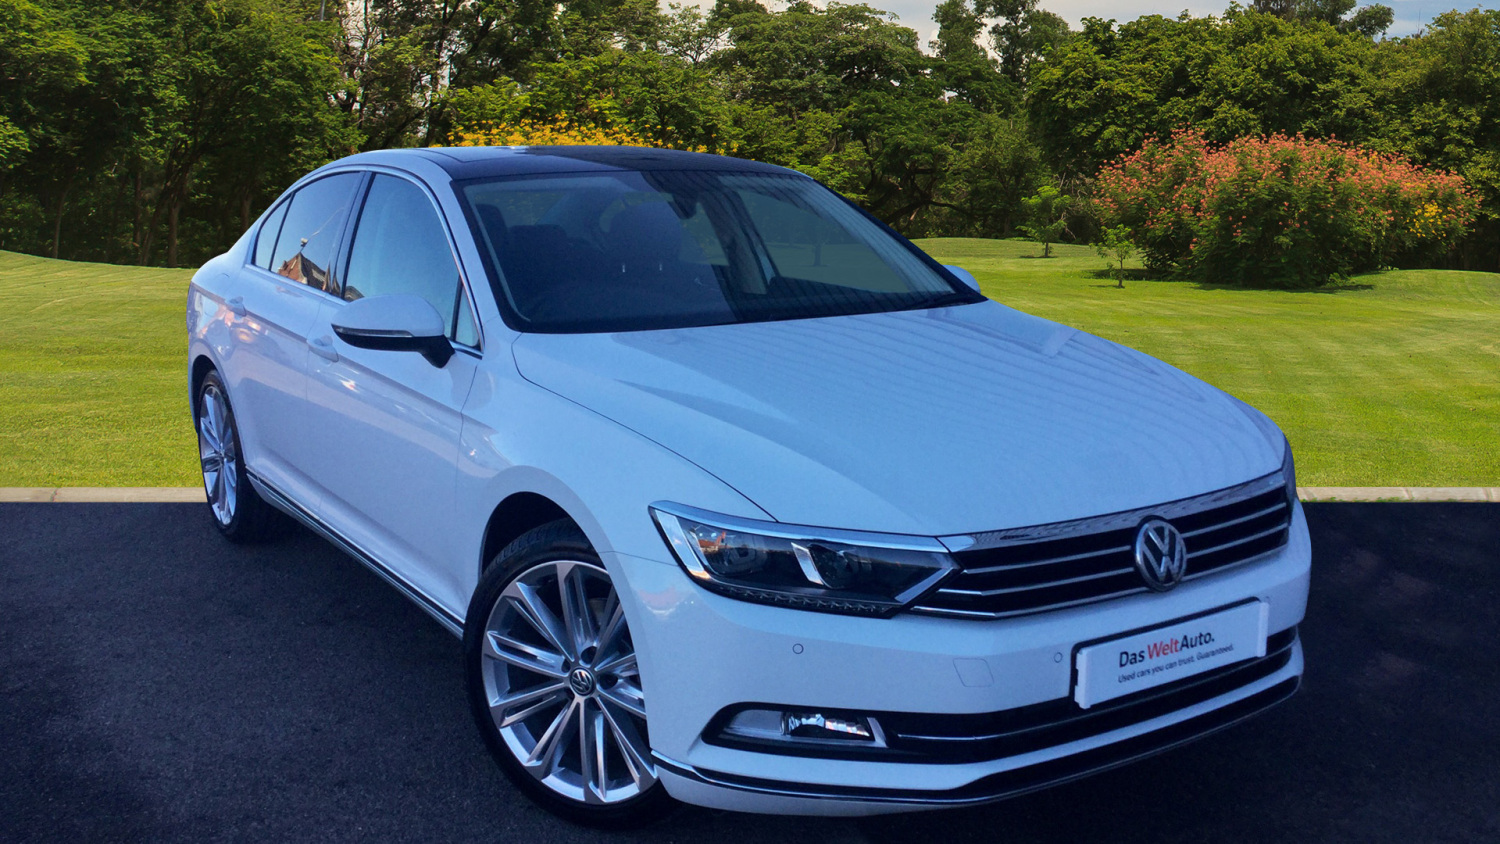 Used Volkswagen Passat 2.0 Tdi Gt 4Dr Dsg [panoramic Roof] [7 Speed] Diesel Saloon for Sale ...